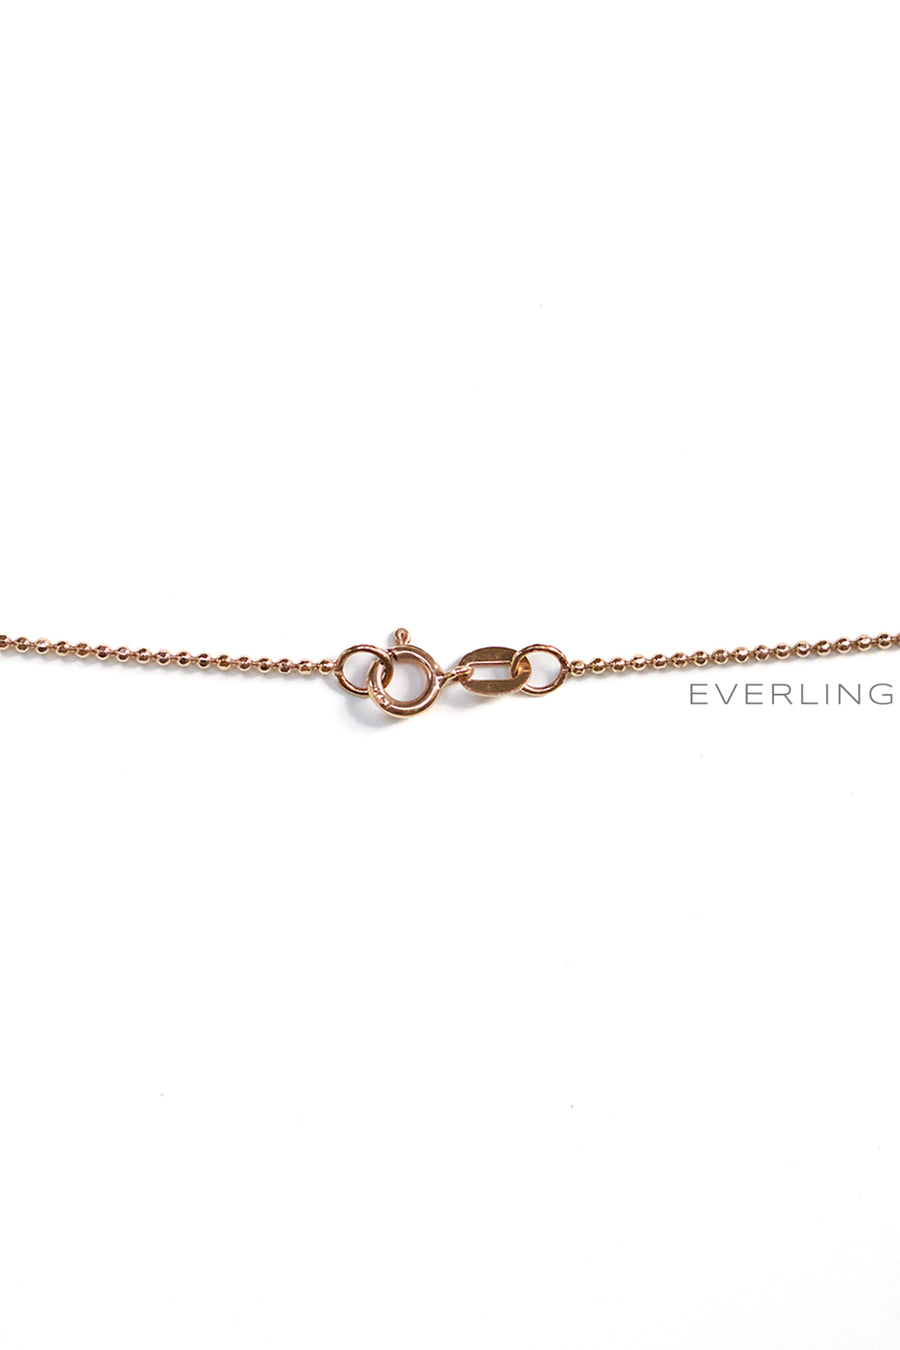 Back Detail- Recycled 14k Rose gold spike pendant with 9 flush set Canadian Sourced diamonds. www.EverlingJewelry.com